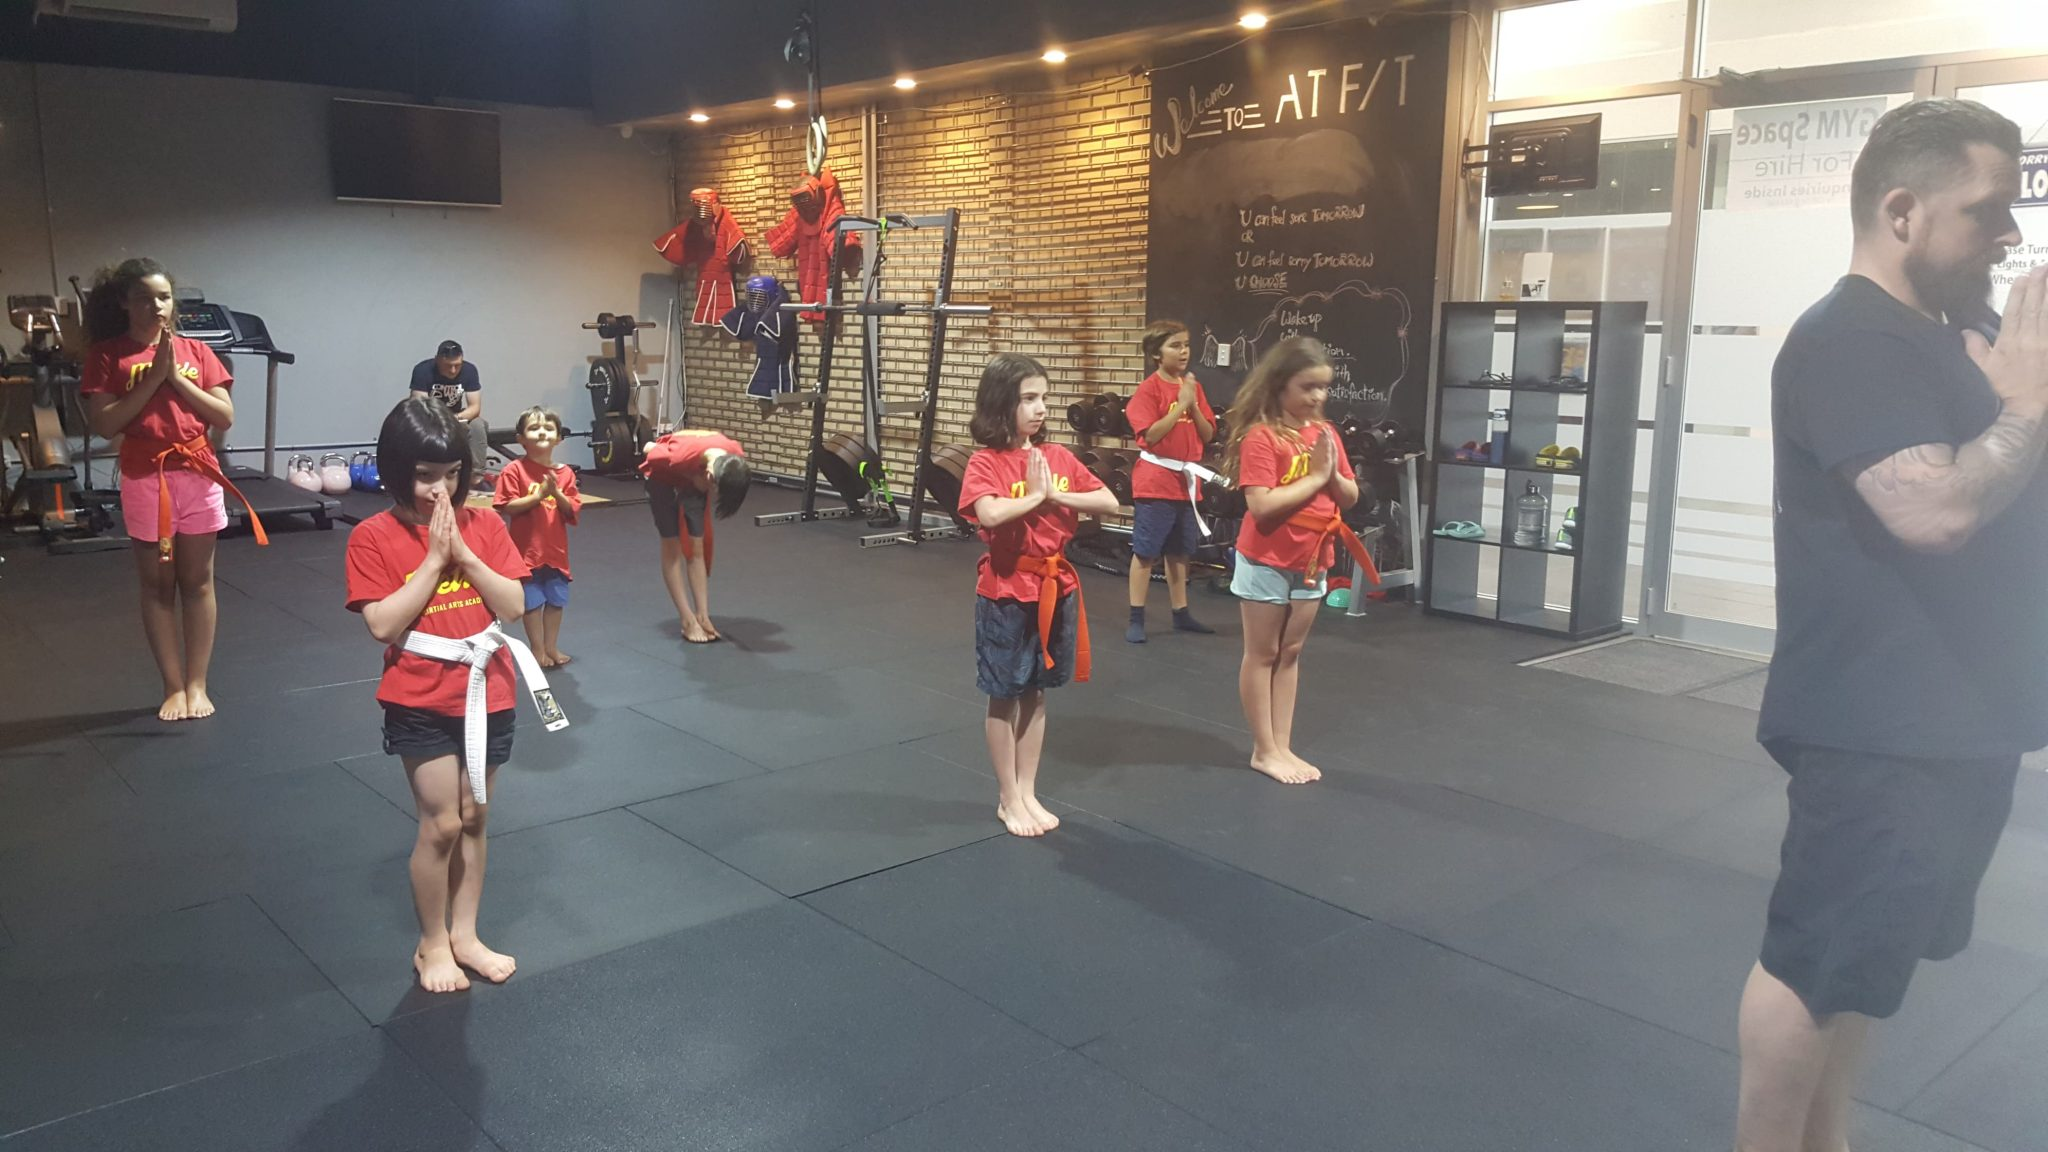 Kids, Children, martial arts, karate, tae kwon do, kali, jkd, fma